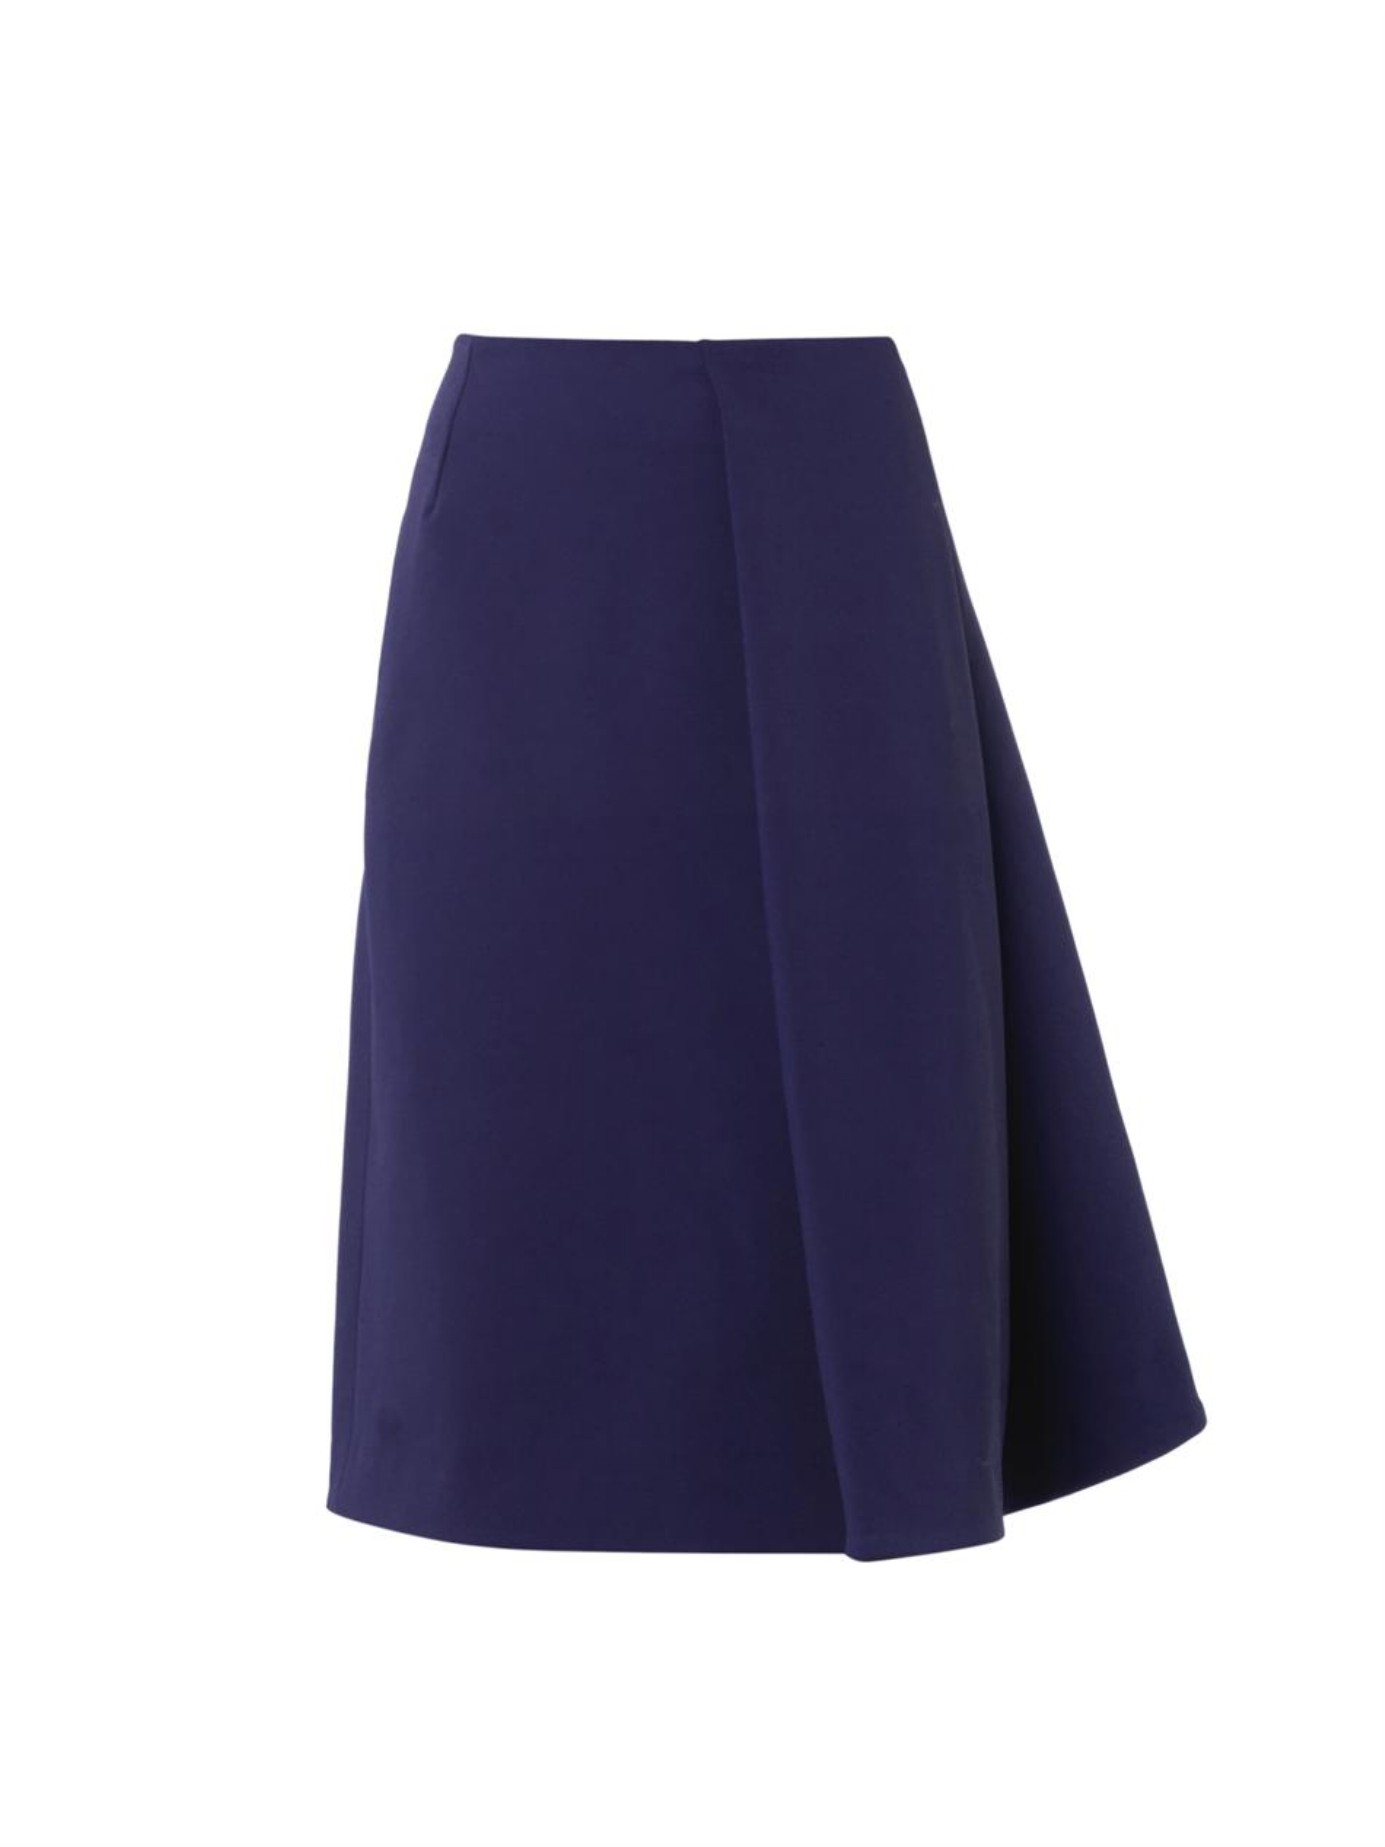 J.w.anderson Sail Wool-Blend A-Line Skirt in Blue   Lyst